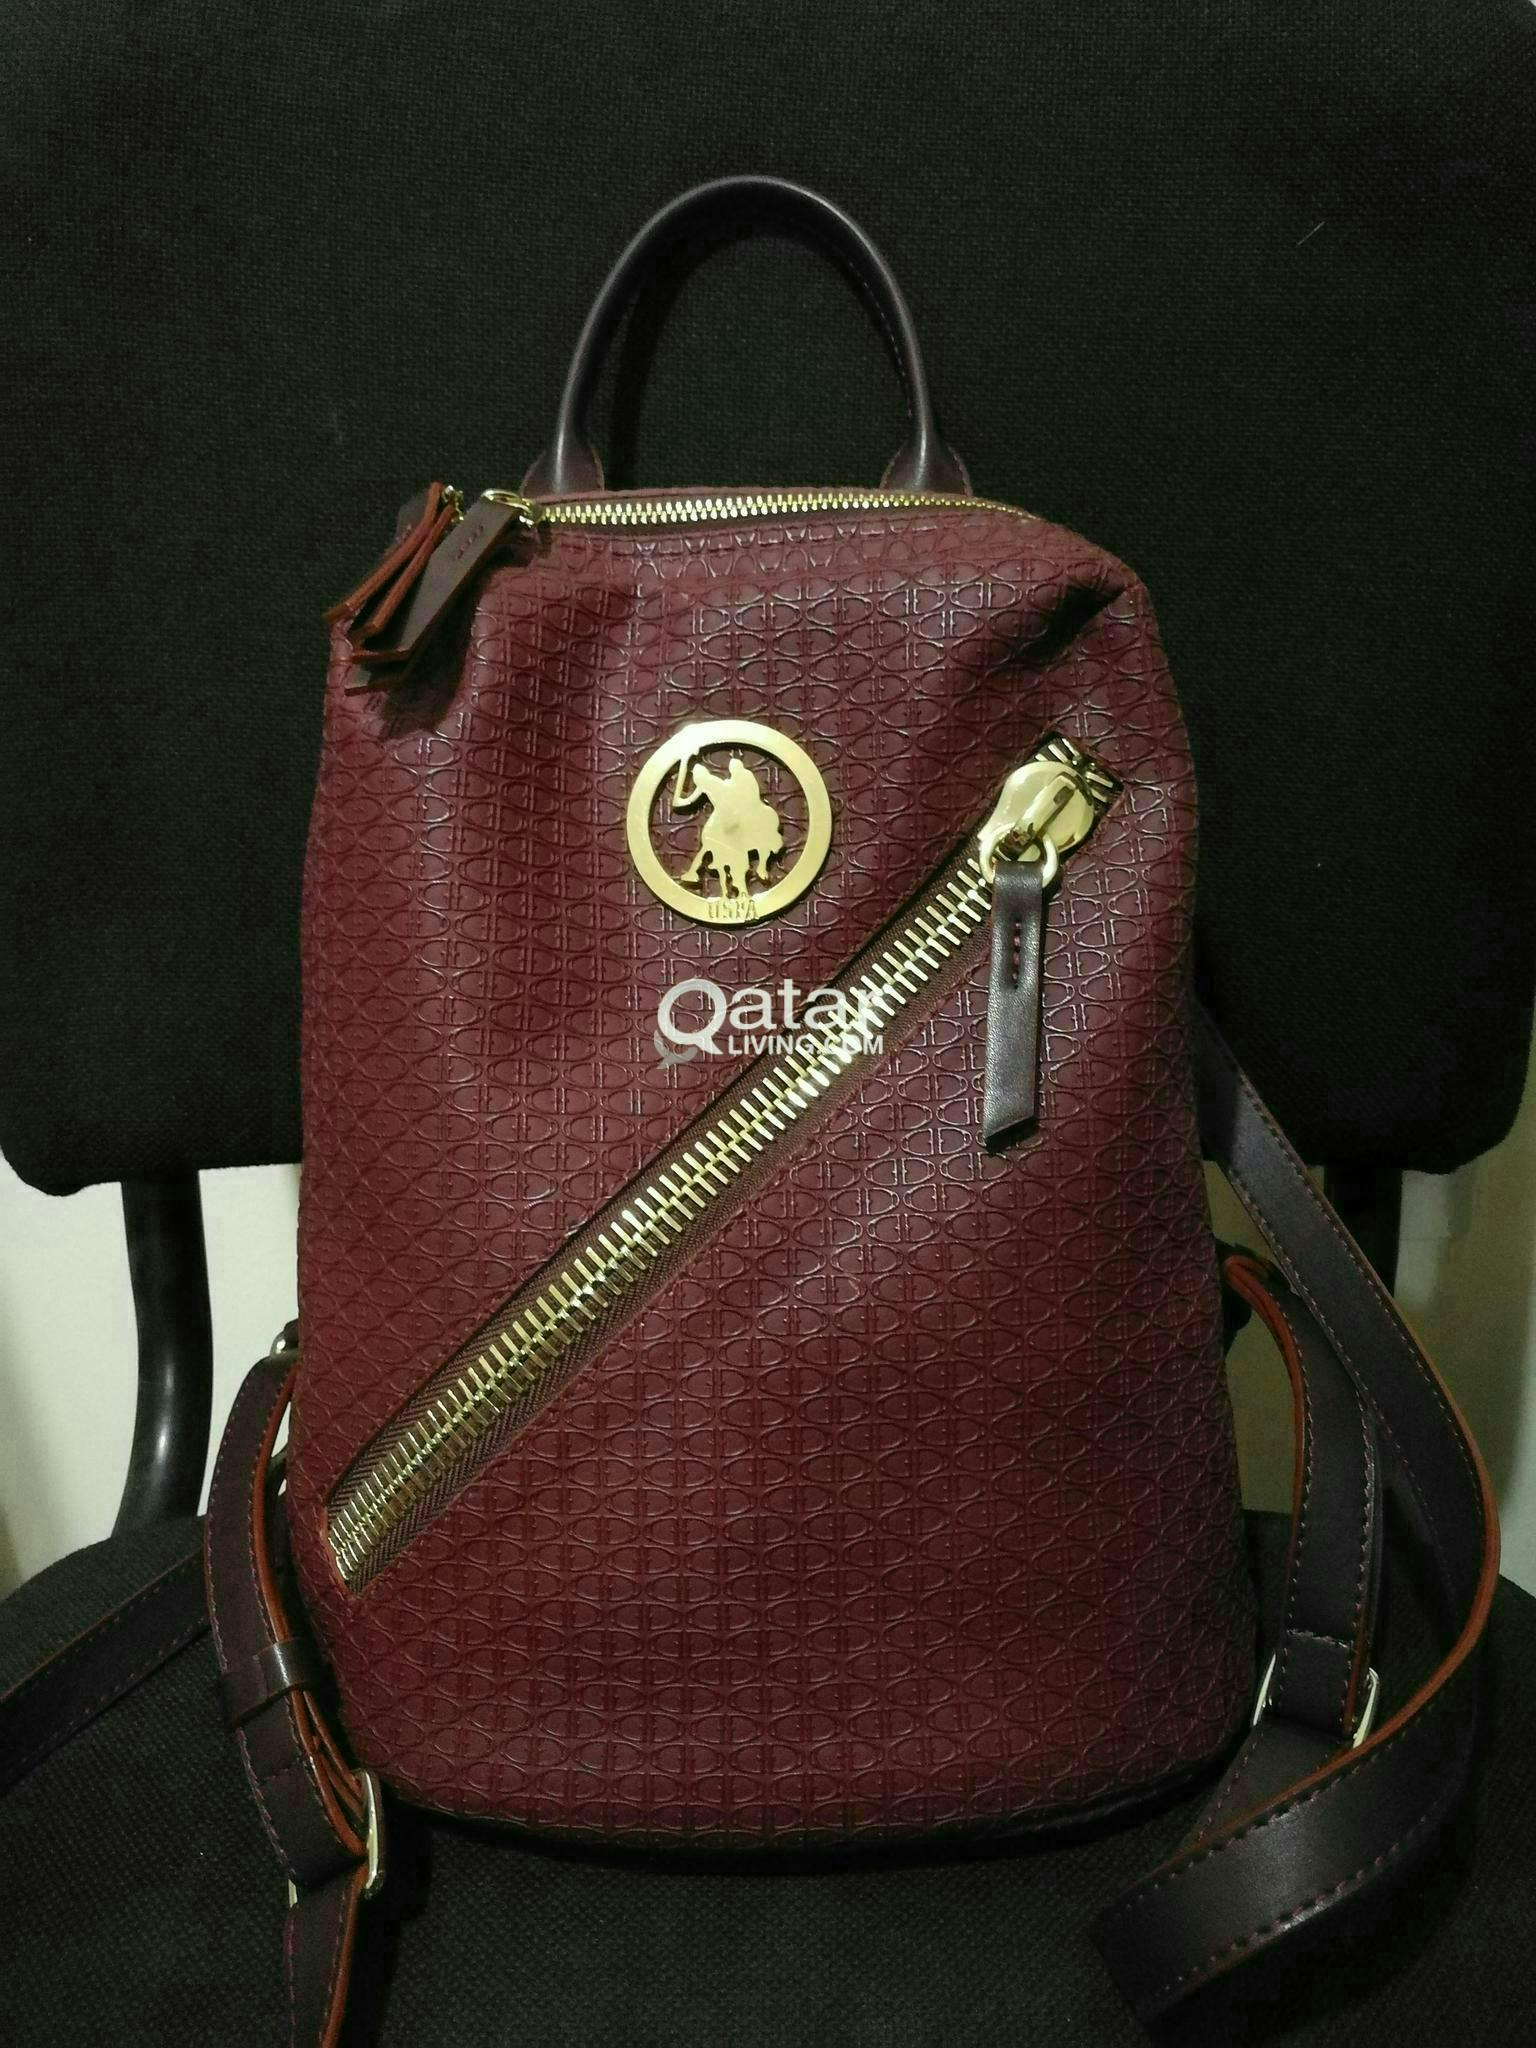 U.S. Polo Hand Bag Original